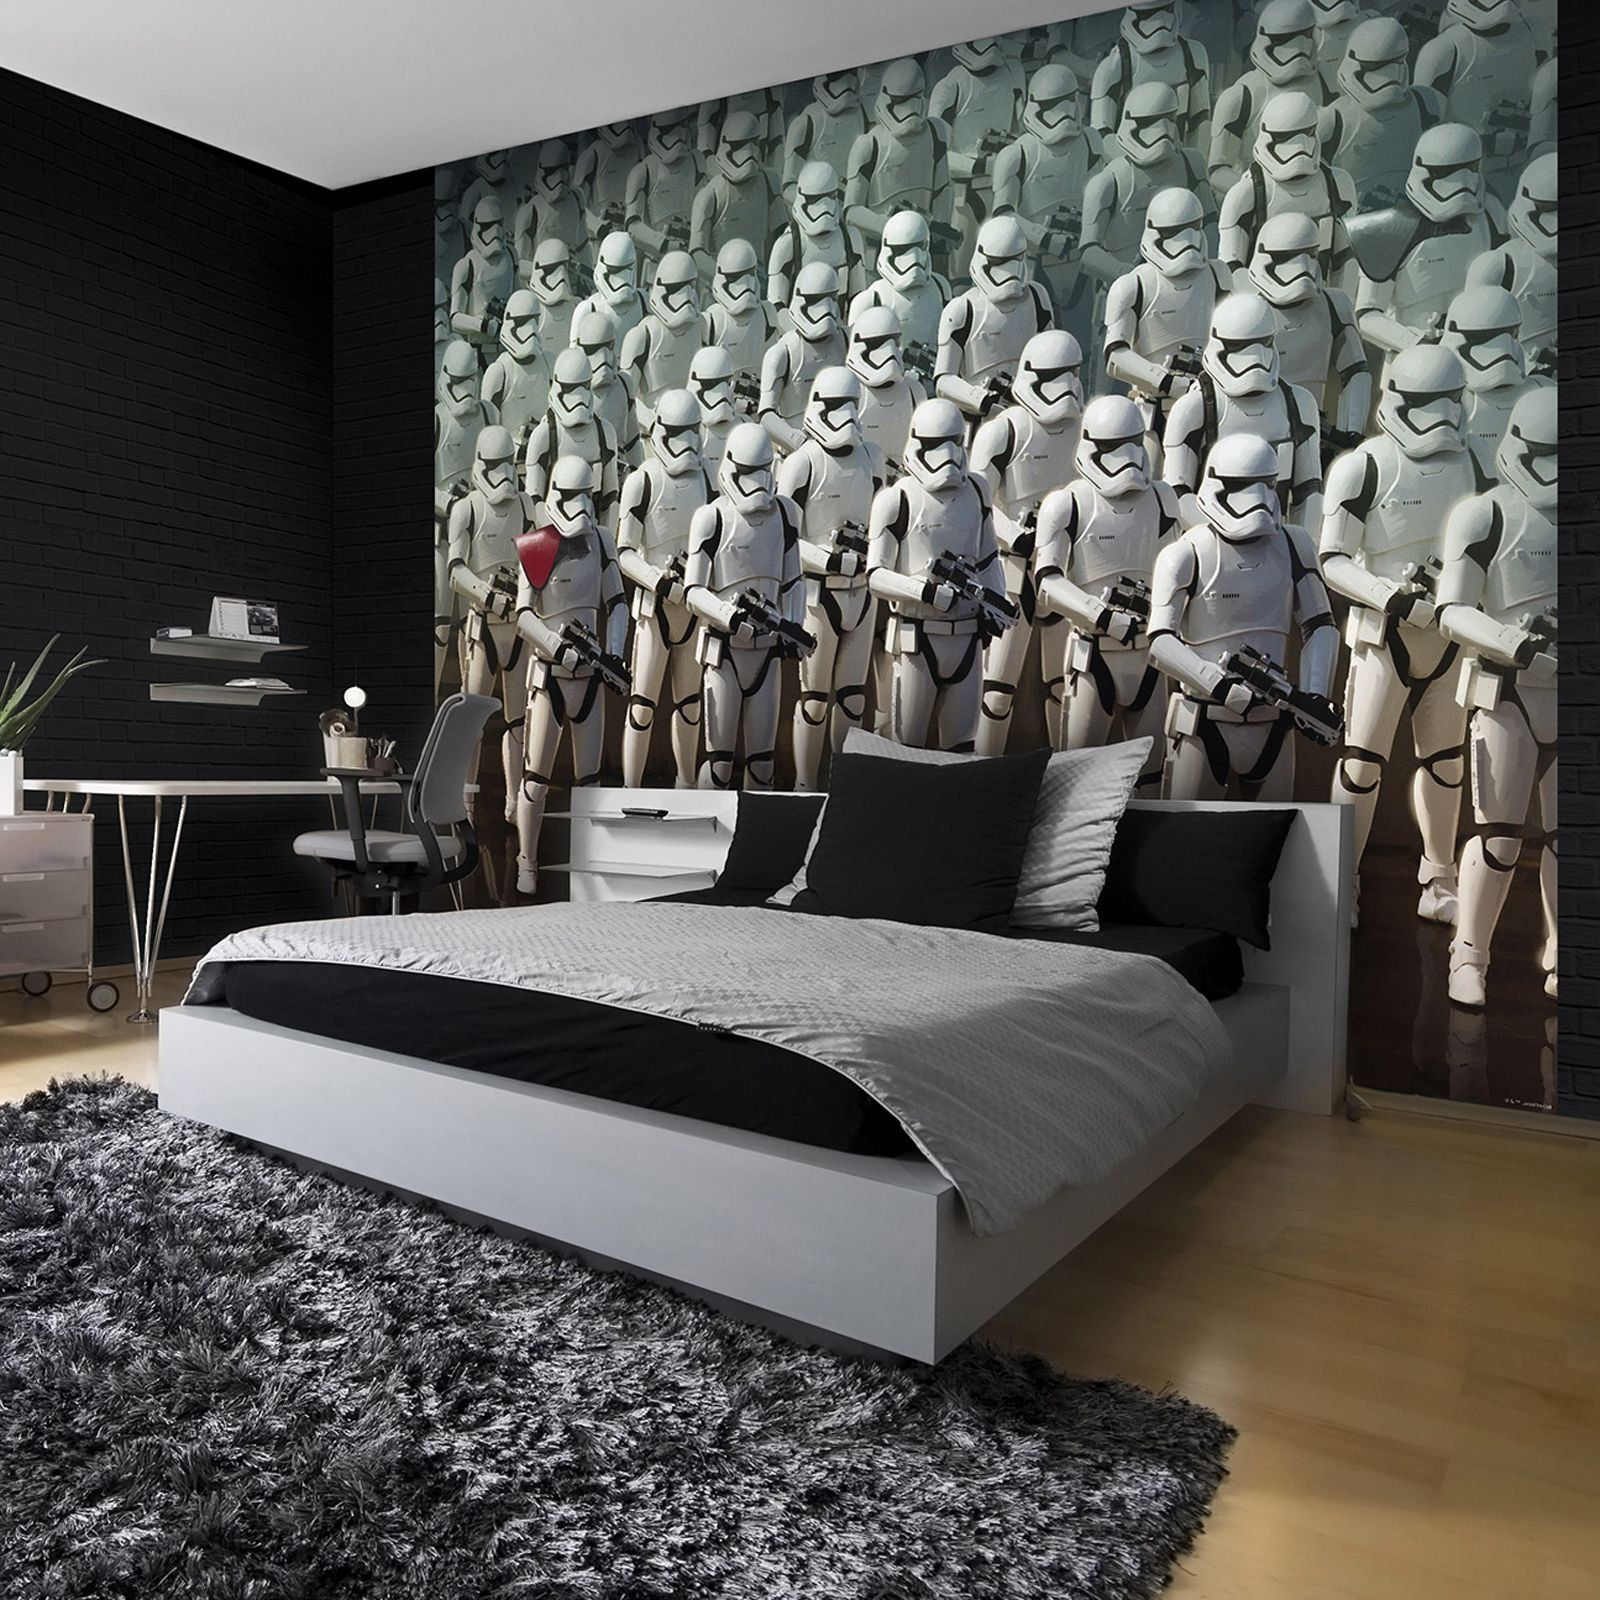 Star Wars Stormtrooper Wall Mural